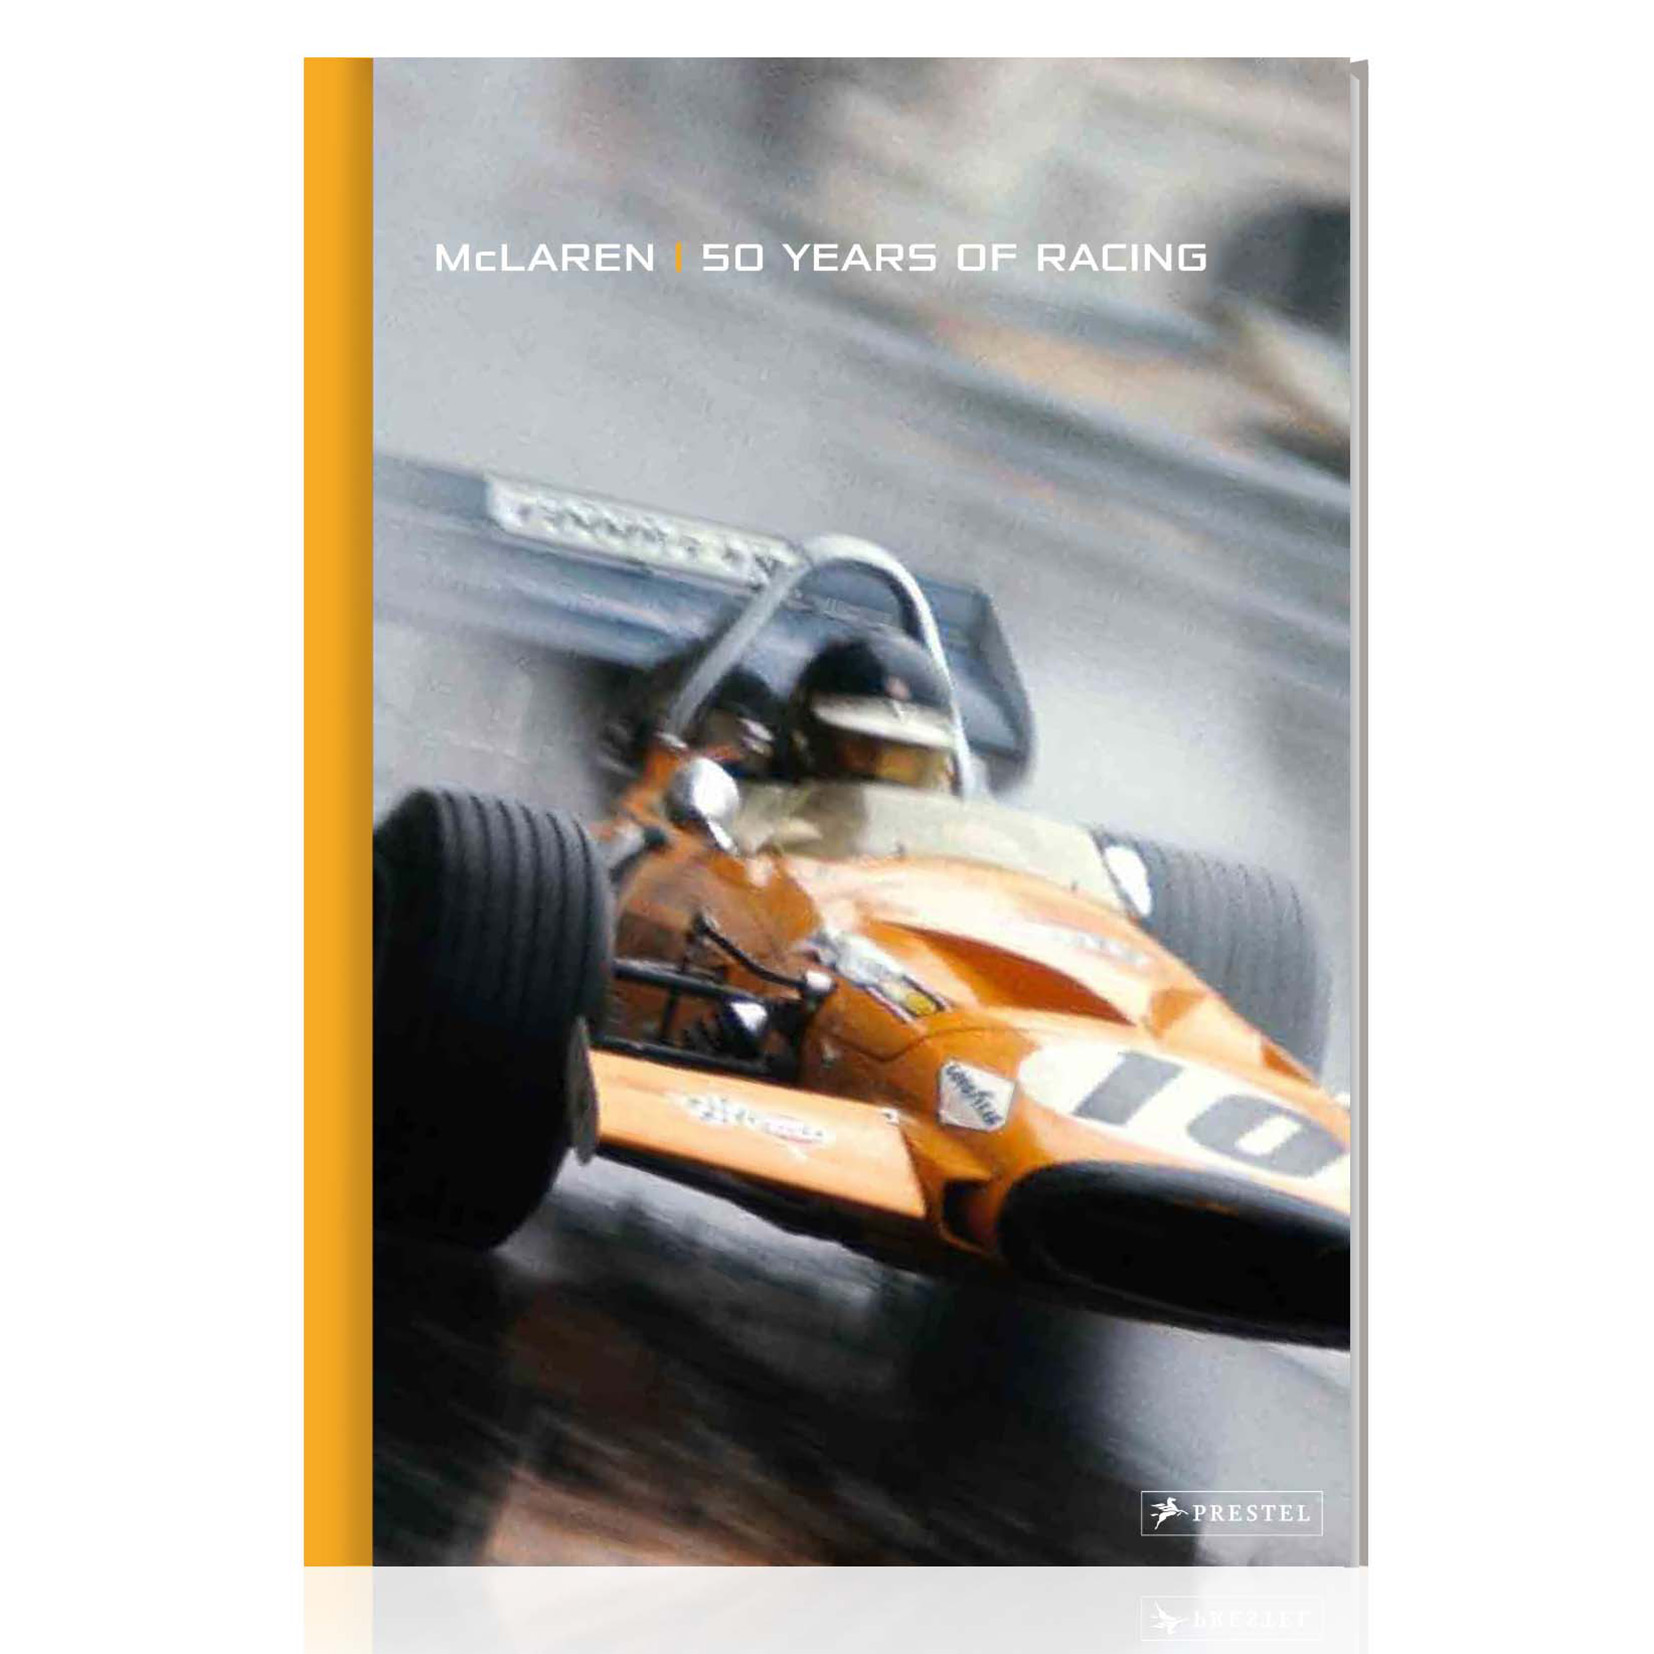 Team McLaren 50 Years of Racing - Limited Editon Book